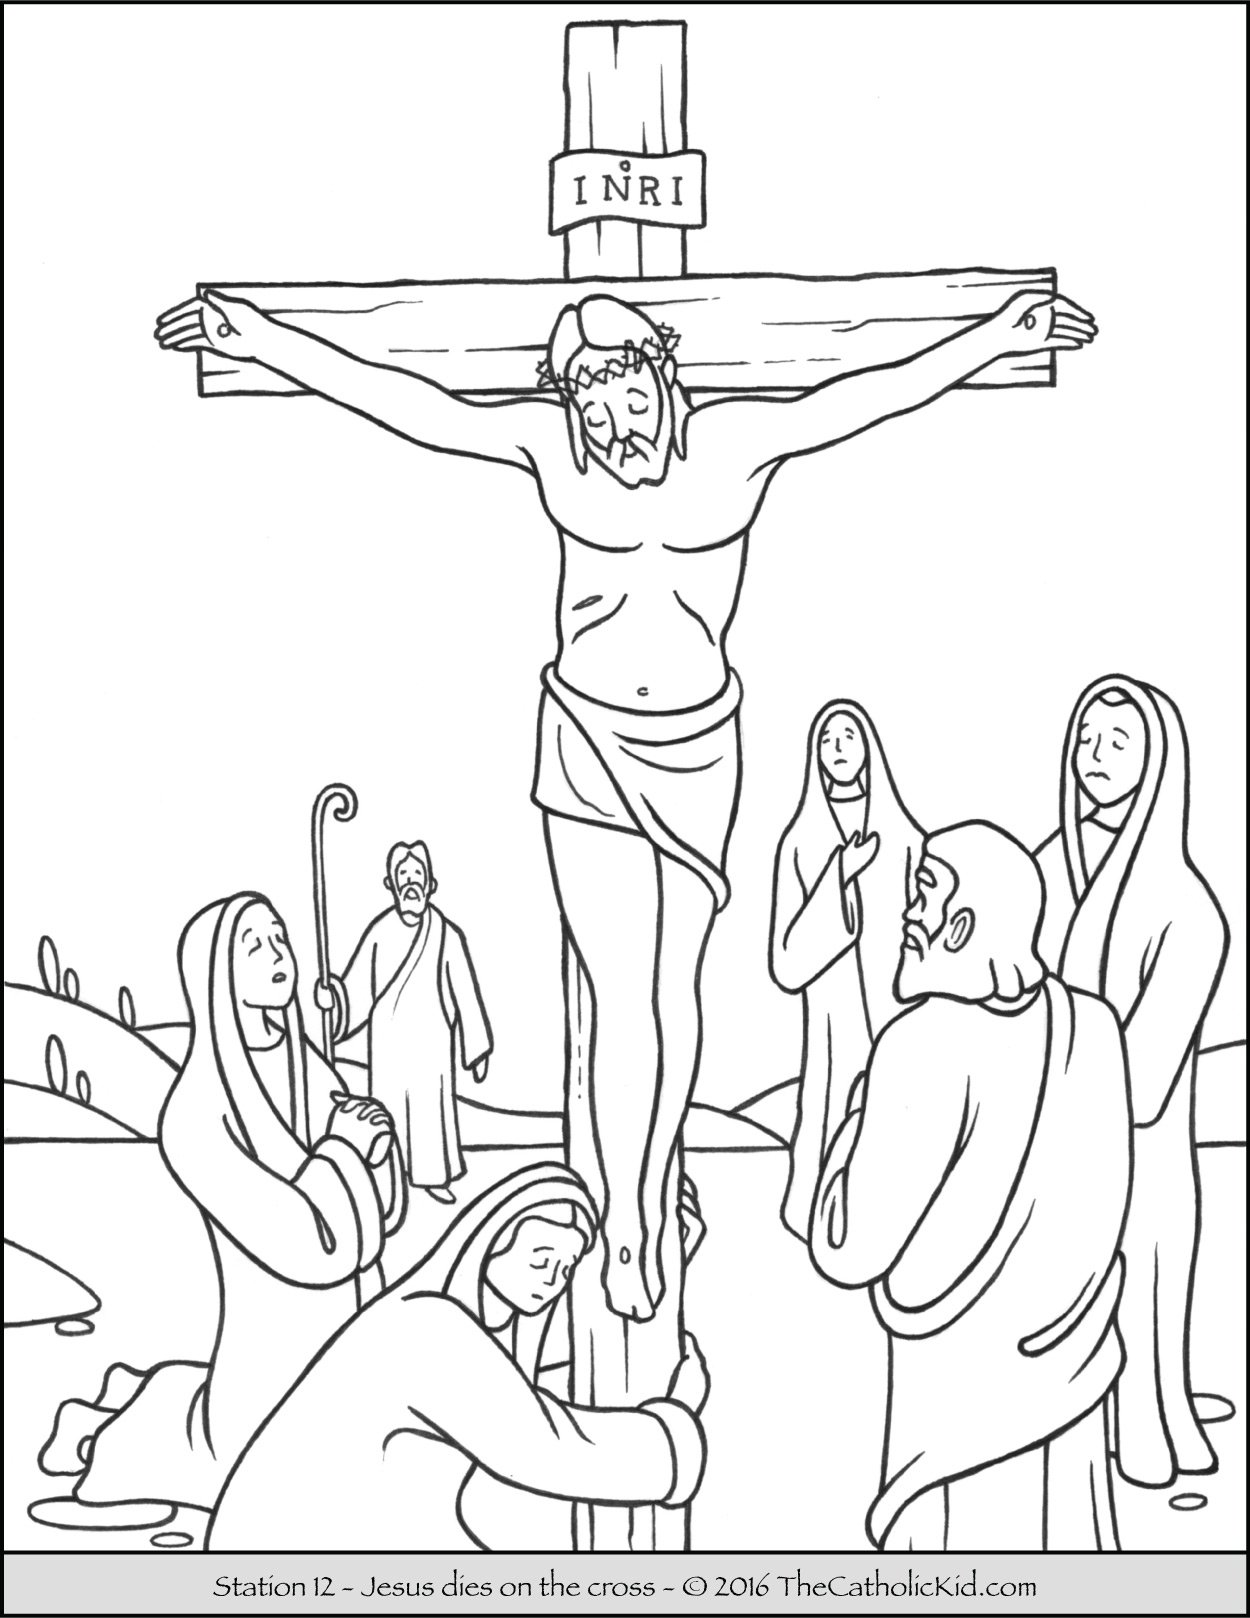 Stations of the Cross Coloring